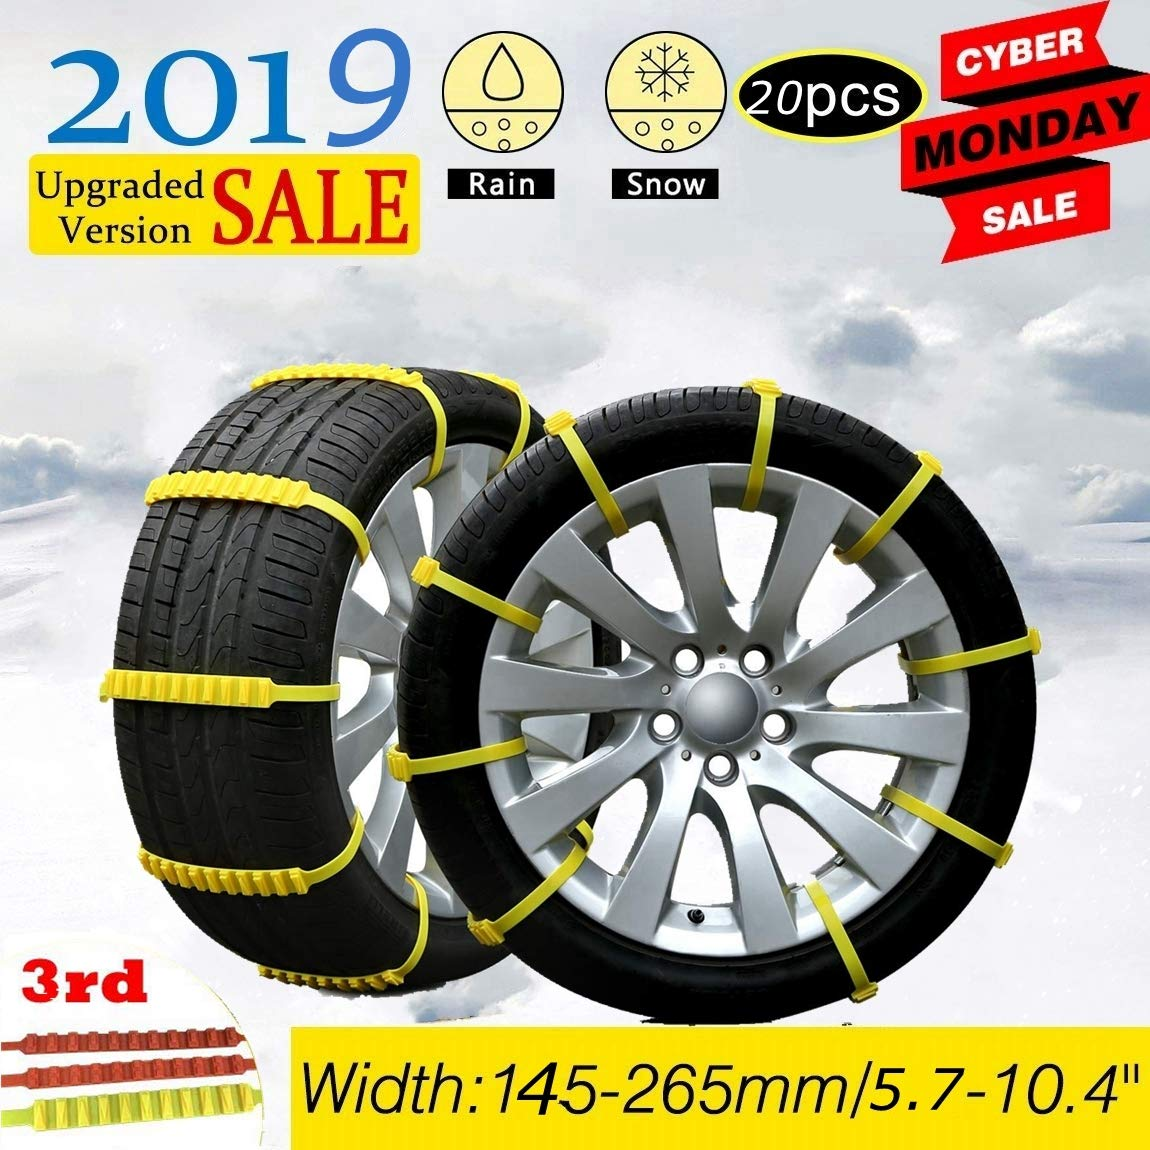 Diagtree 20 Pack Anti Slip Snow Chains for SUV Car Adjustable Universal Emergency Thickening Anti Skid Tire Chain,Winter Driving Security Chains,Traction Mud Snow Chains